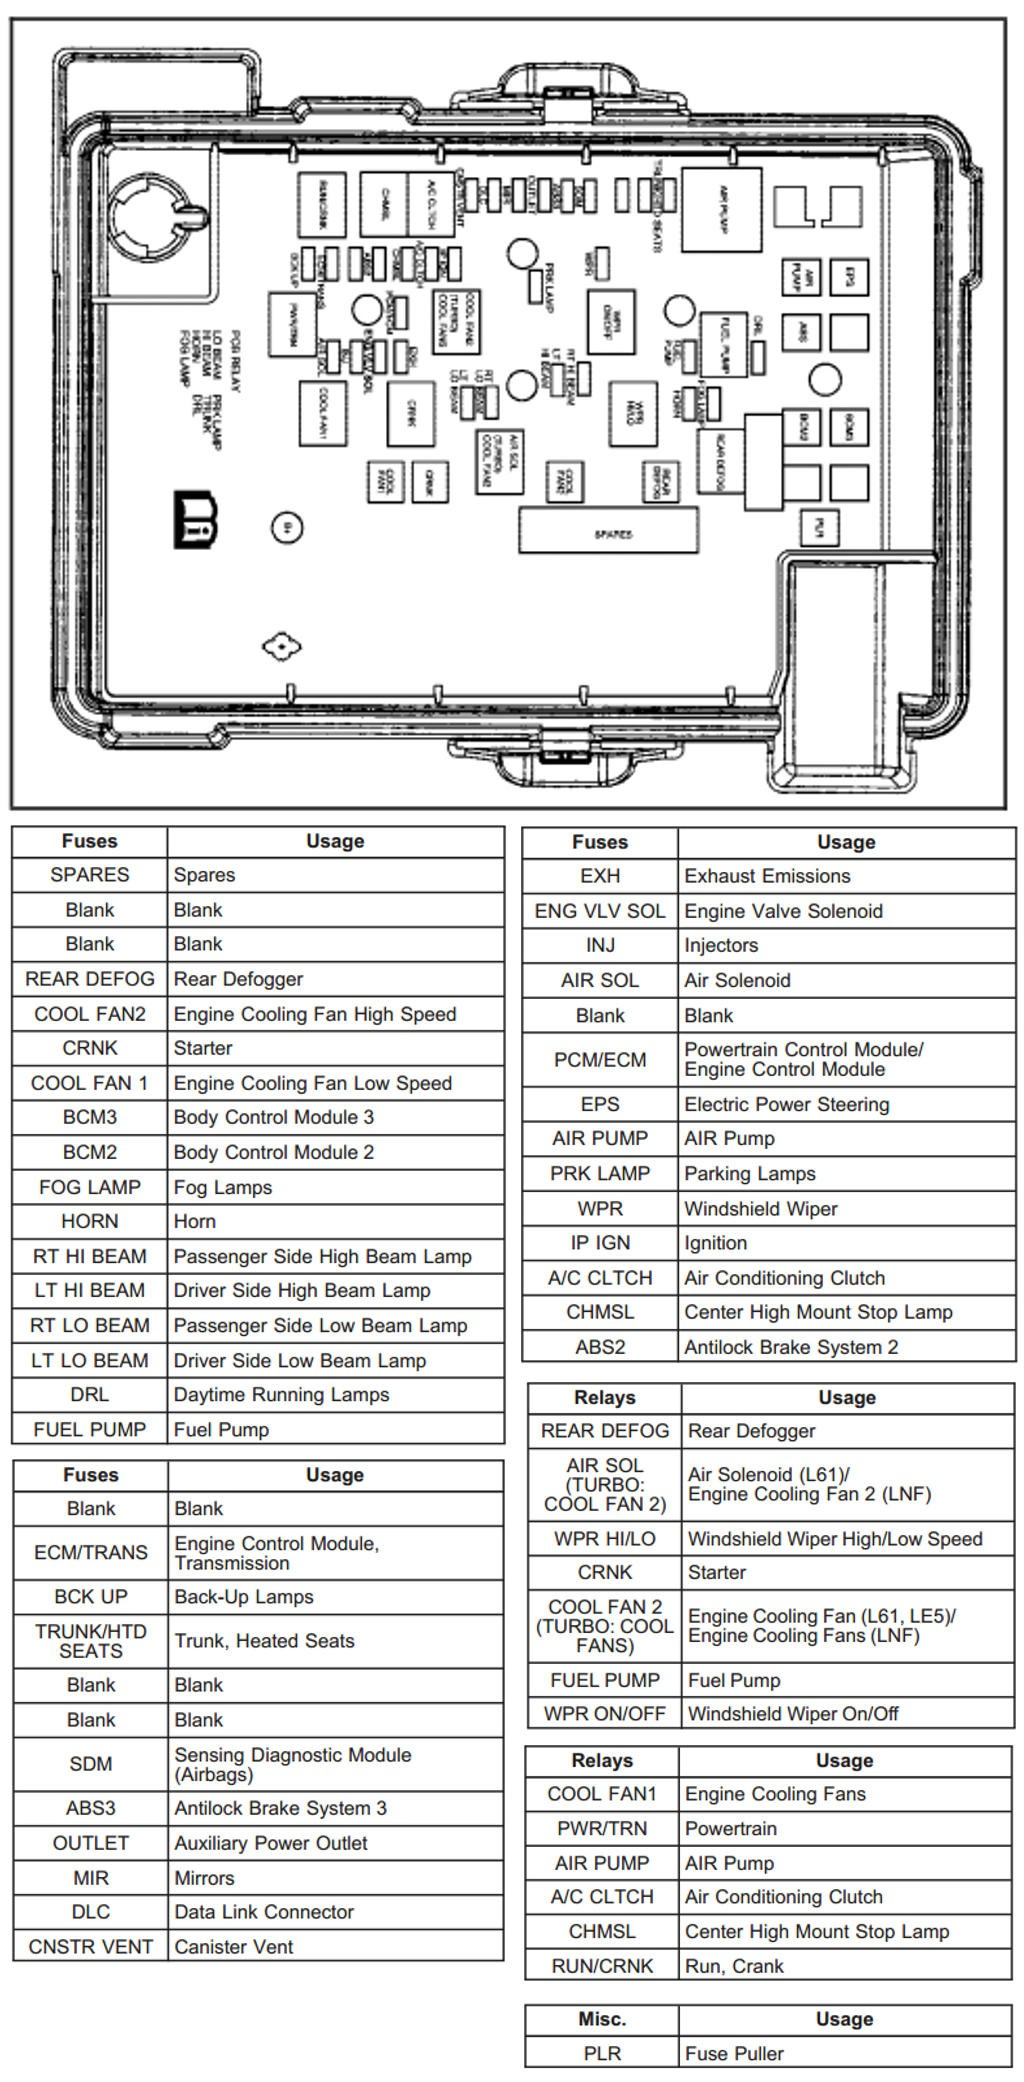 electric chevy cobalt fuse box schematic - wiring diagrams last-metal -  last-metal.alcuoredeldiabete.it  al cuore del diabete